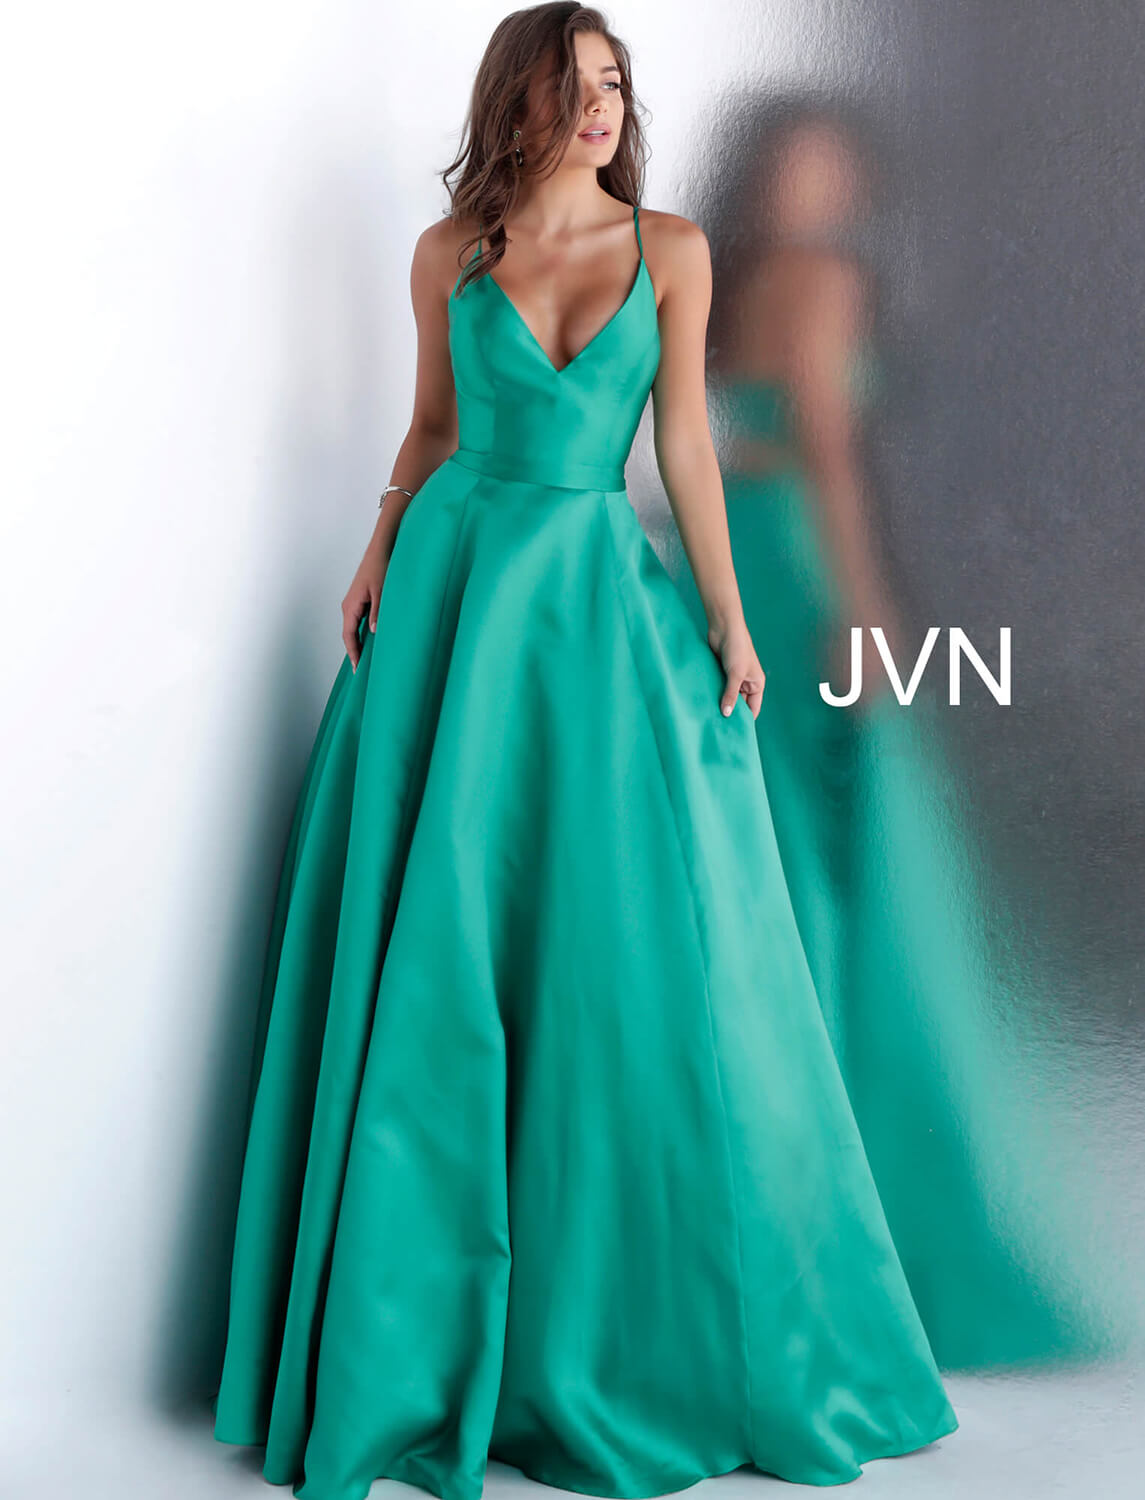 A- Line Prom Dresses,A-Line Prom Dresses,A Line Formal Dresses, Teal Prom Dresses with Straps,Teal Prom Dresses with Straps,a line prom dress,a line prom dresses,